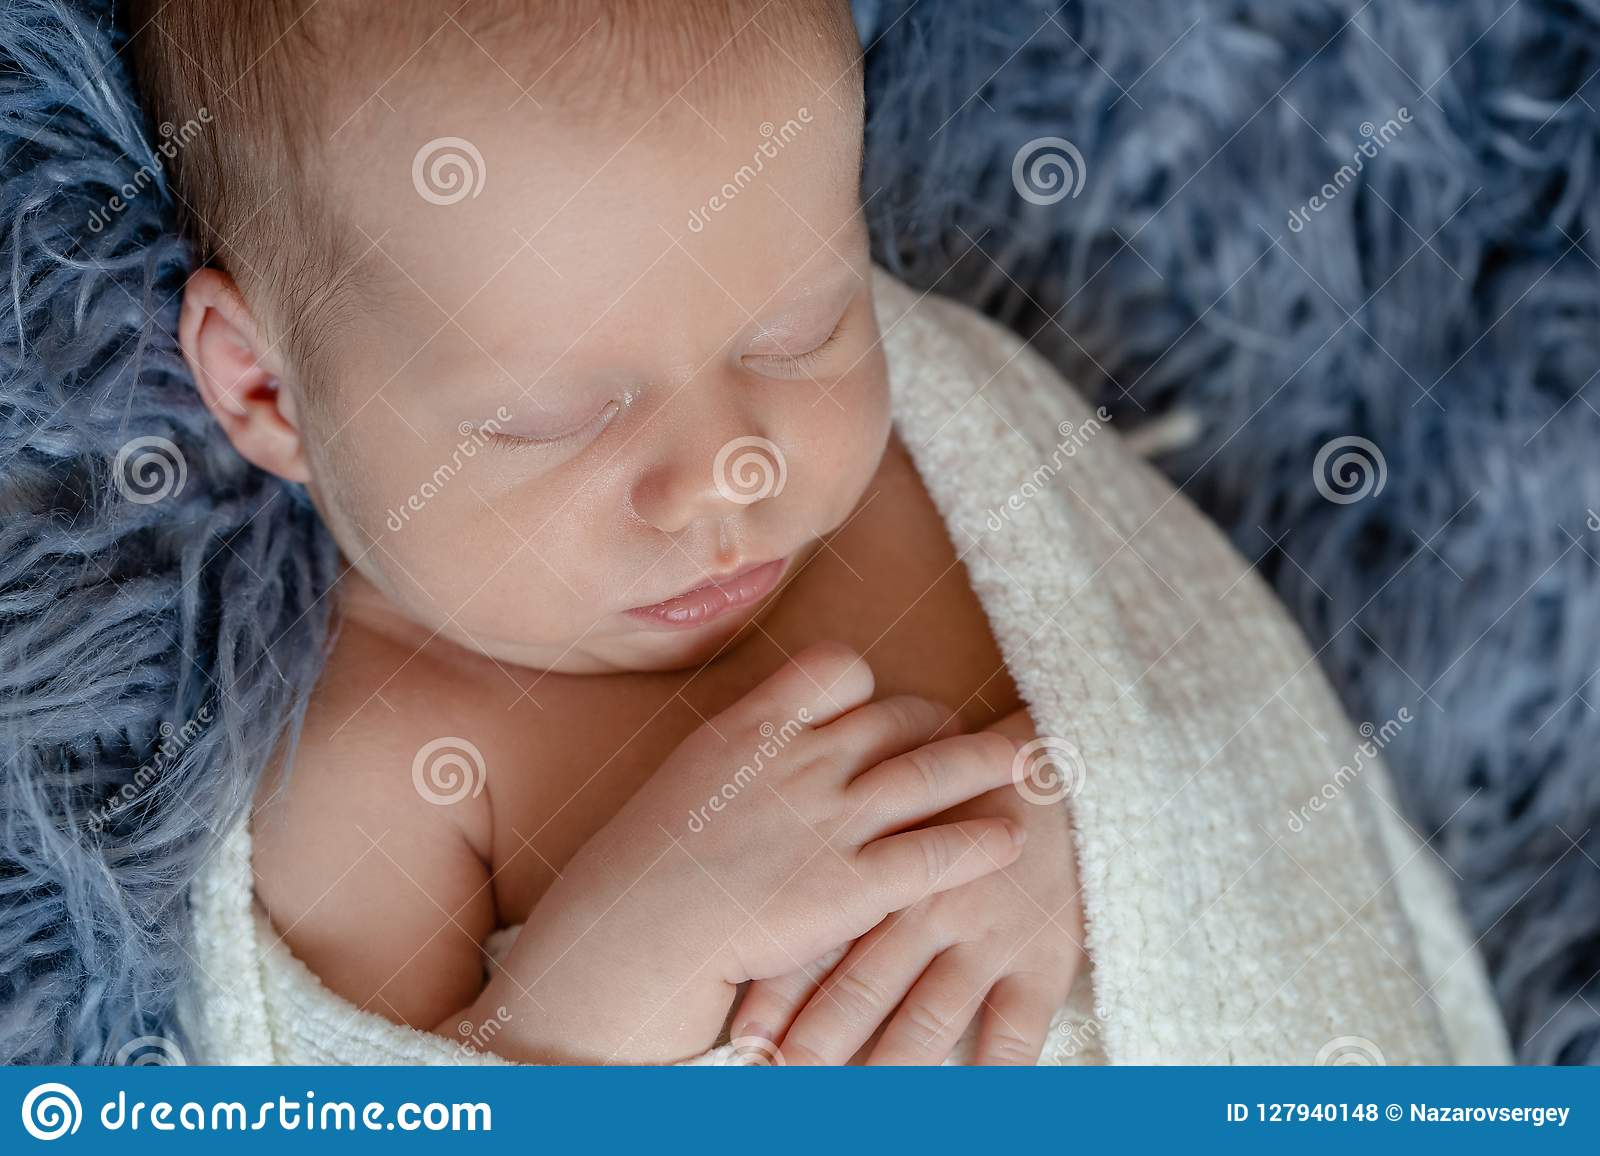 58c818333880 Newborn Baby Boy In Bed. New Born Child Sleeping Under A White ...